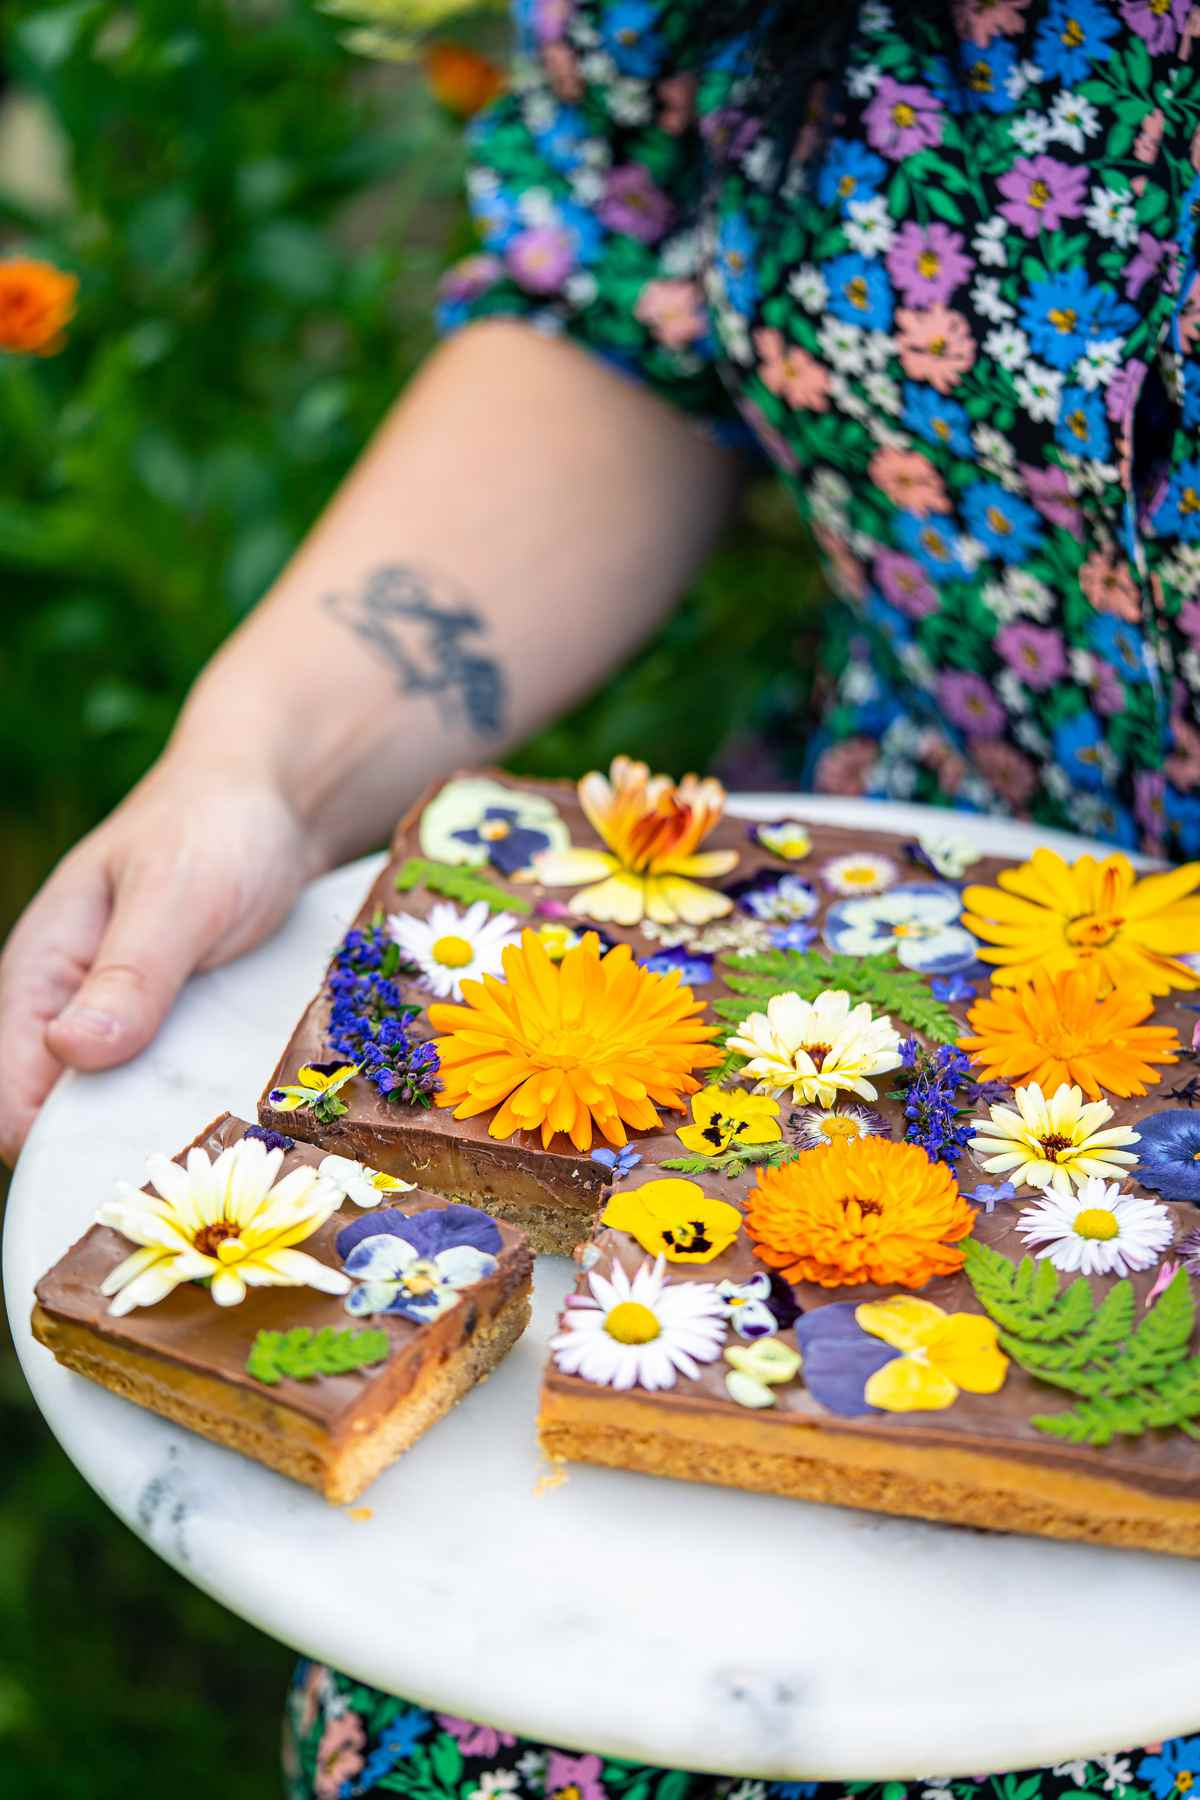 A woman holding a plate of date and pecan millionaire's shortbread. They have an assortment of flowers on the top.